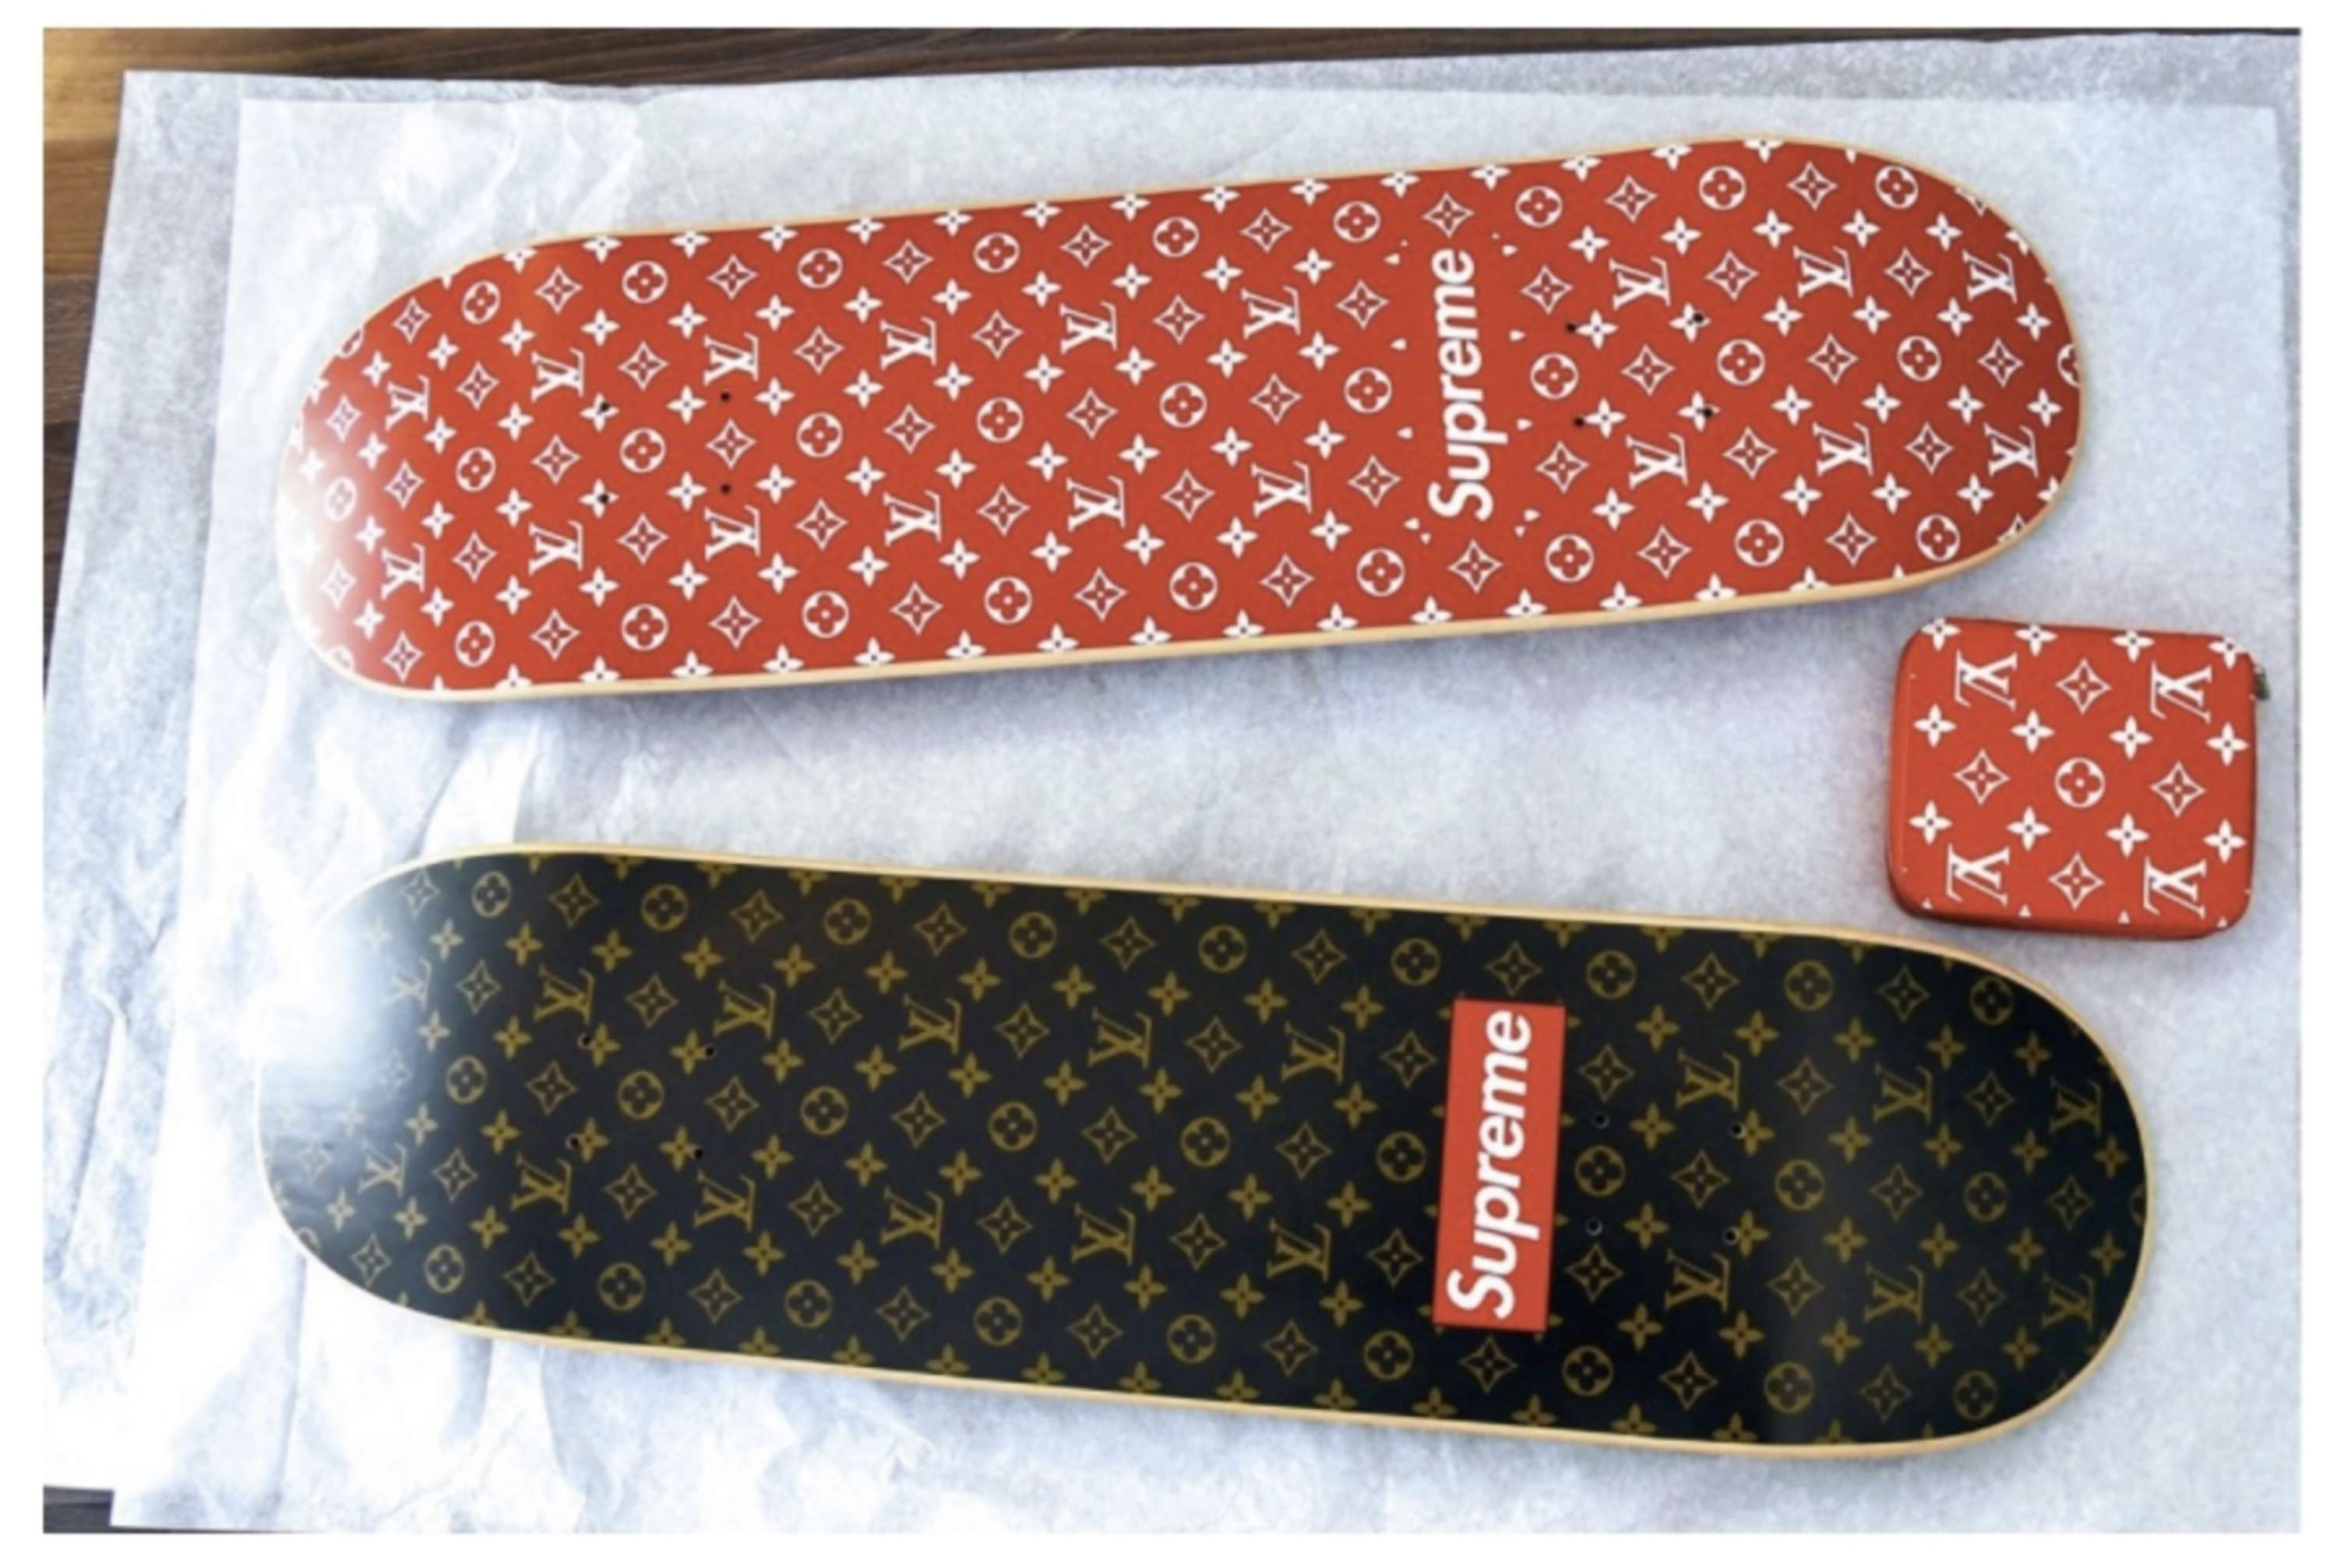 SUPREME x LOUIS VUITTON   The Dots b394e07dc60